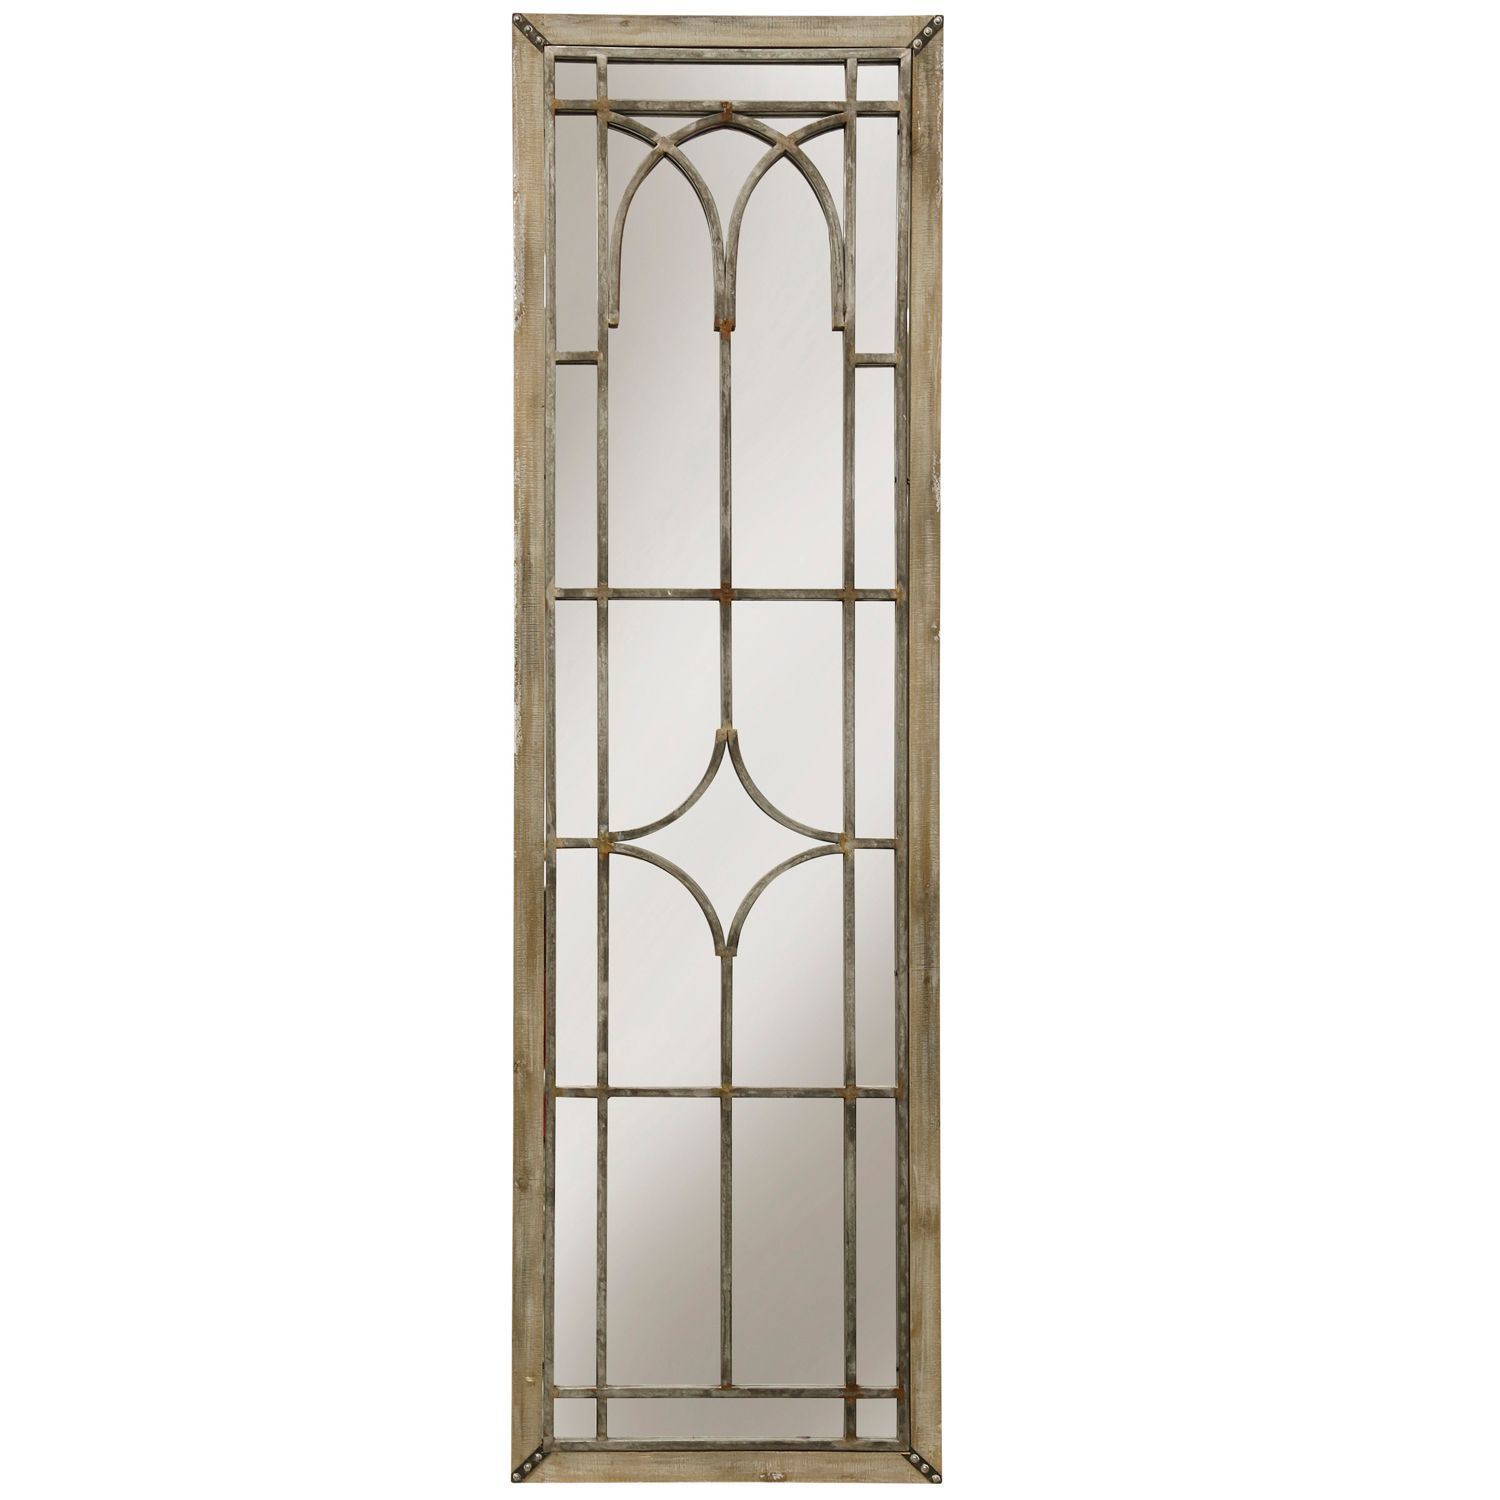 Entry Gate Mirrored Panel Wall Decor Pier 1 Imports Framed Mirror Wall Mirror Panel Wall Mirror Panels